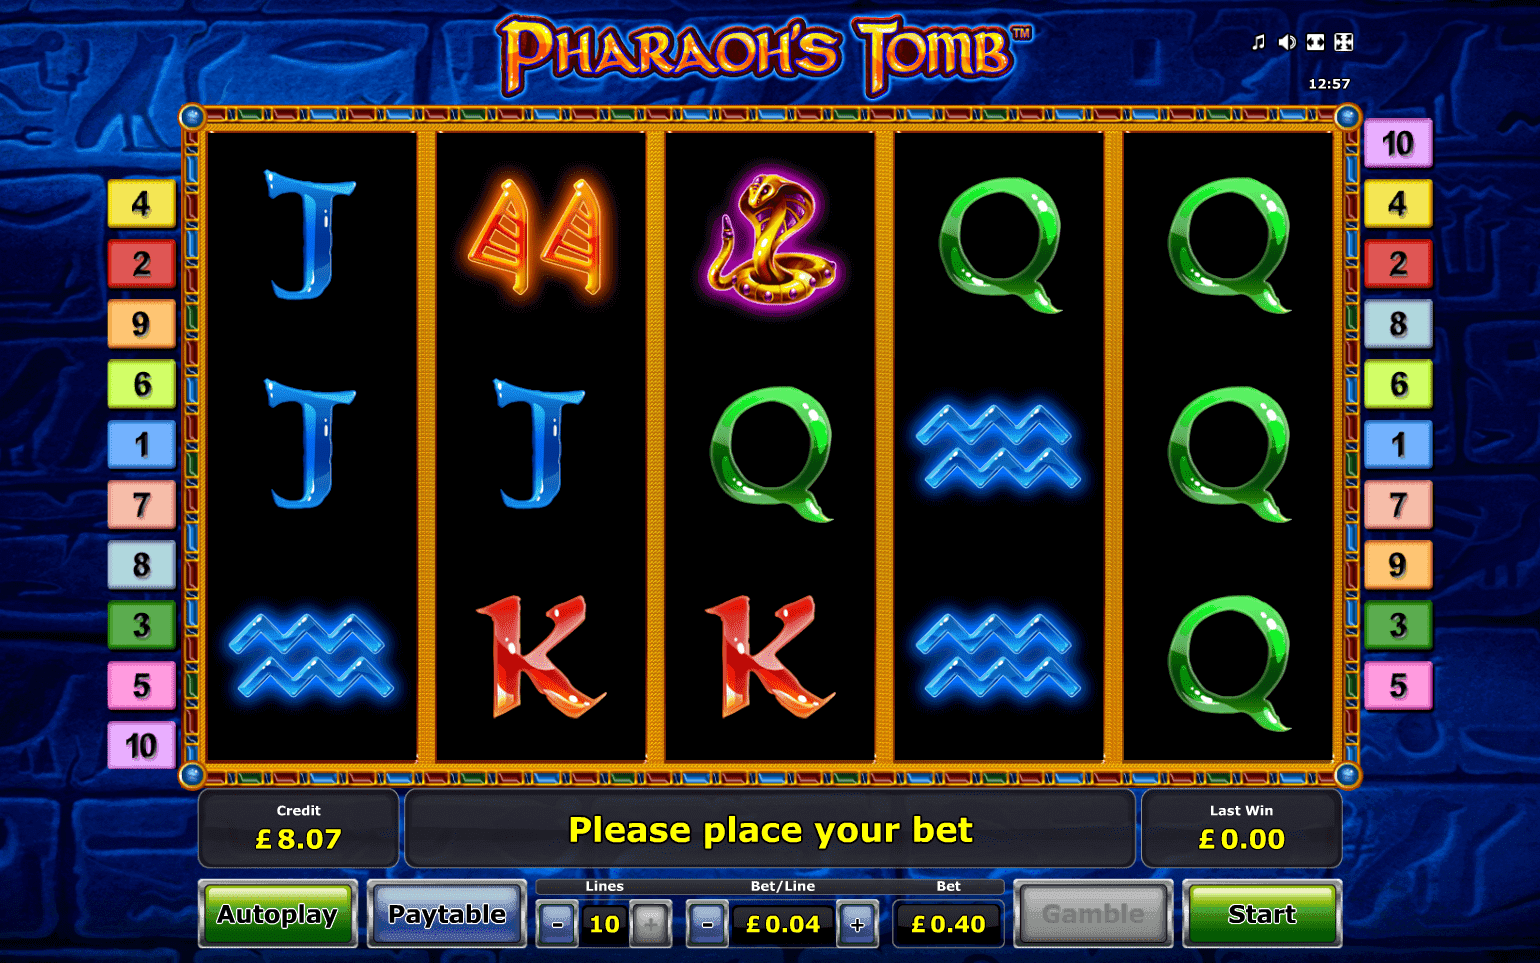 Pharaohs Revenge Slot - Play Online for Free Money